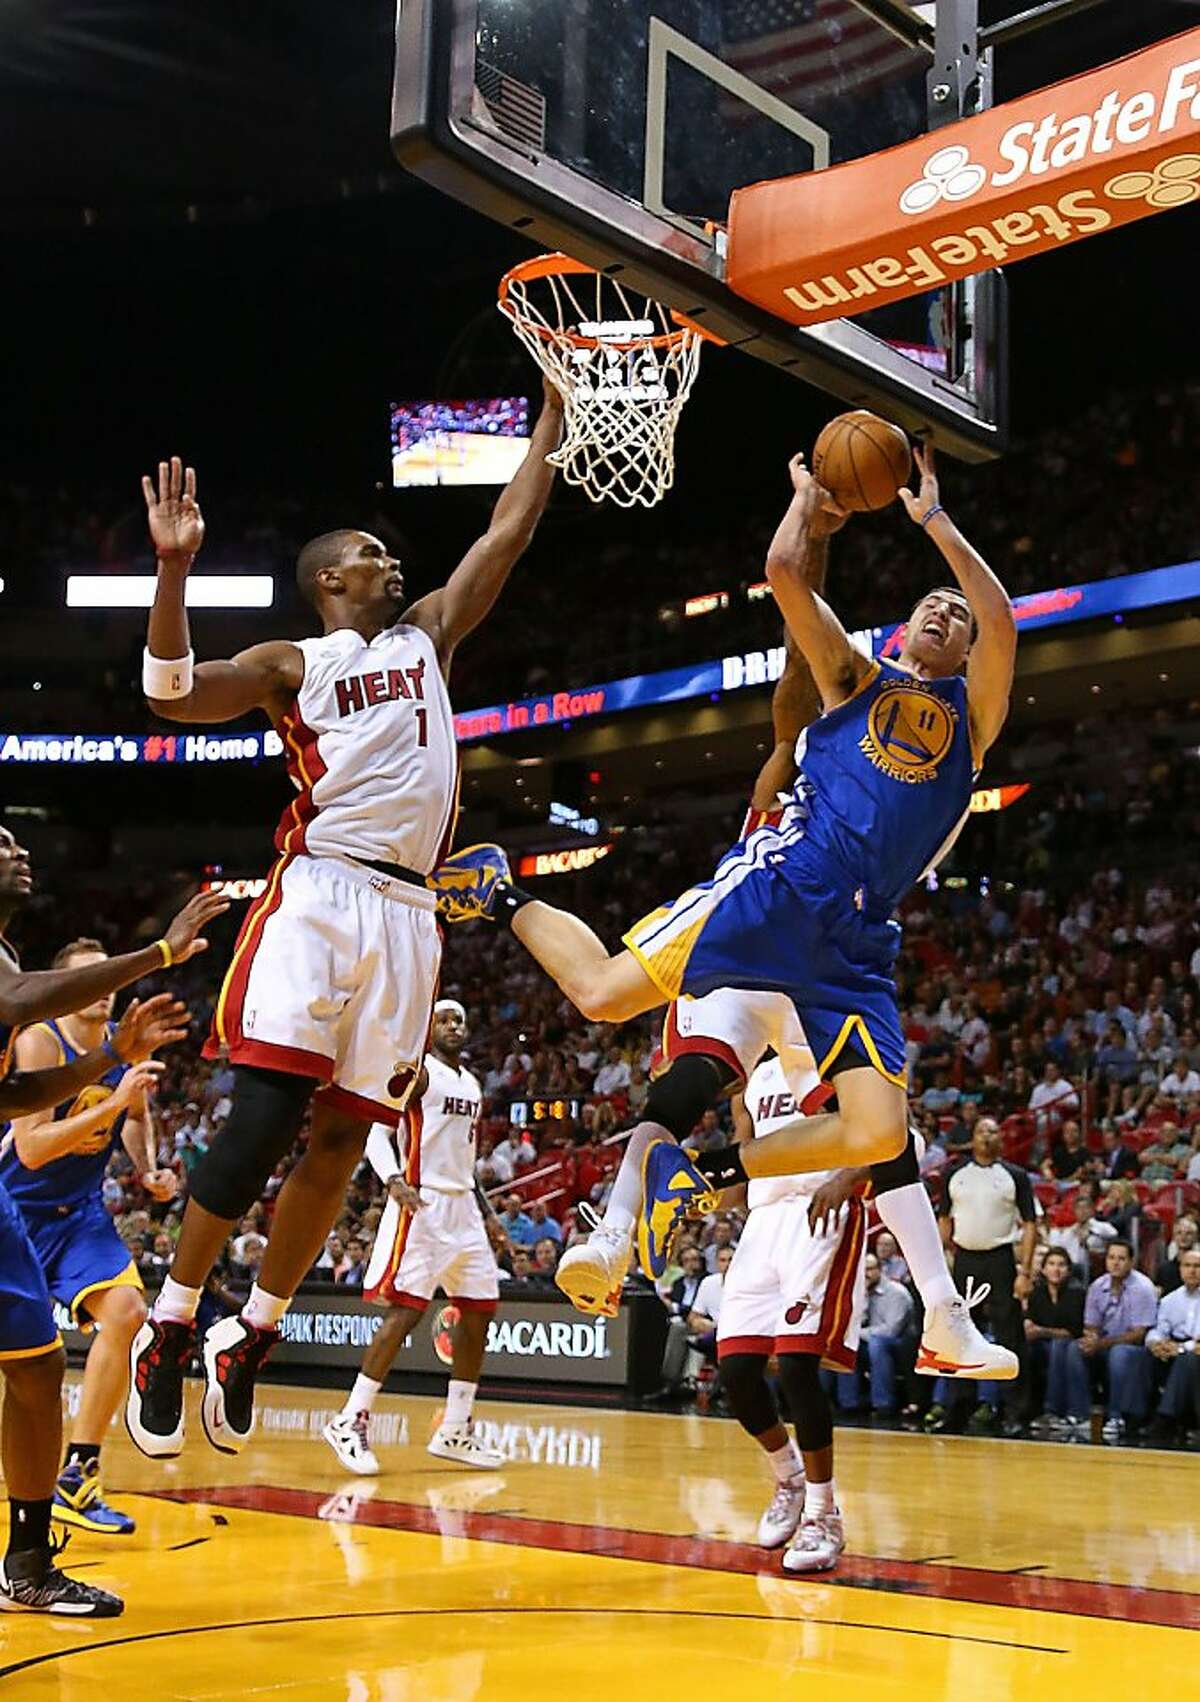 MIAMI, FL - DECEMBER 12: Klay Thompson #11 of the Golden State Warriors shoots over Chris Bosh #1 of the Miami Heat during a game at American Airlines Arena on December 12, 2012 in Miami, Florida. (Photo by Mike Ehrmann/Getty Images)